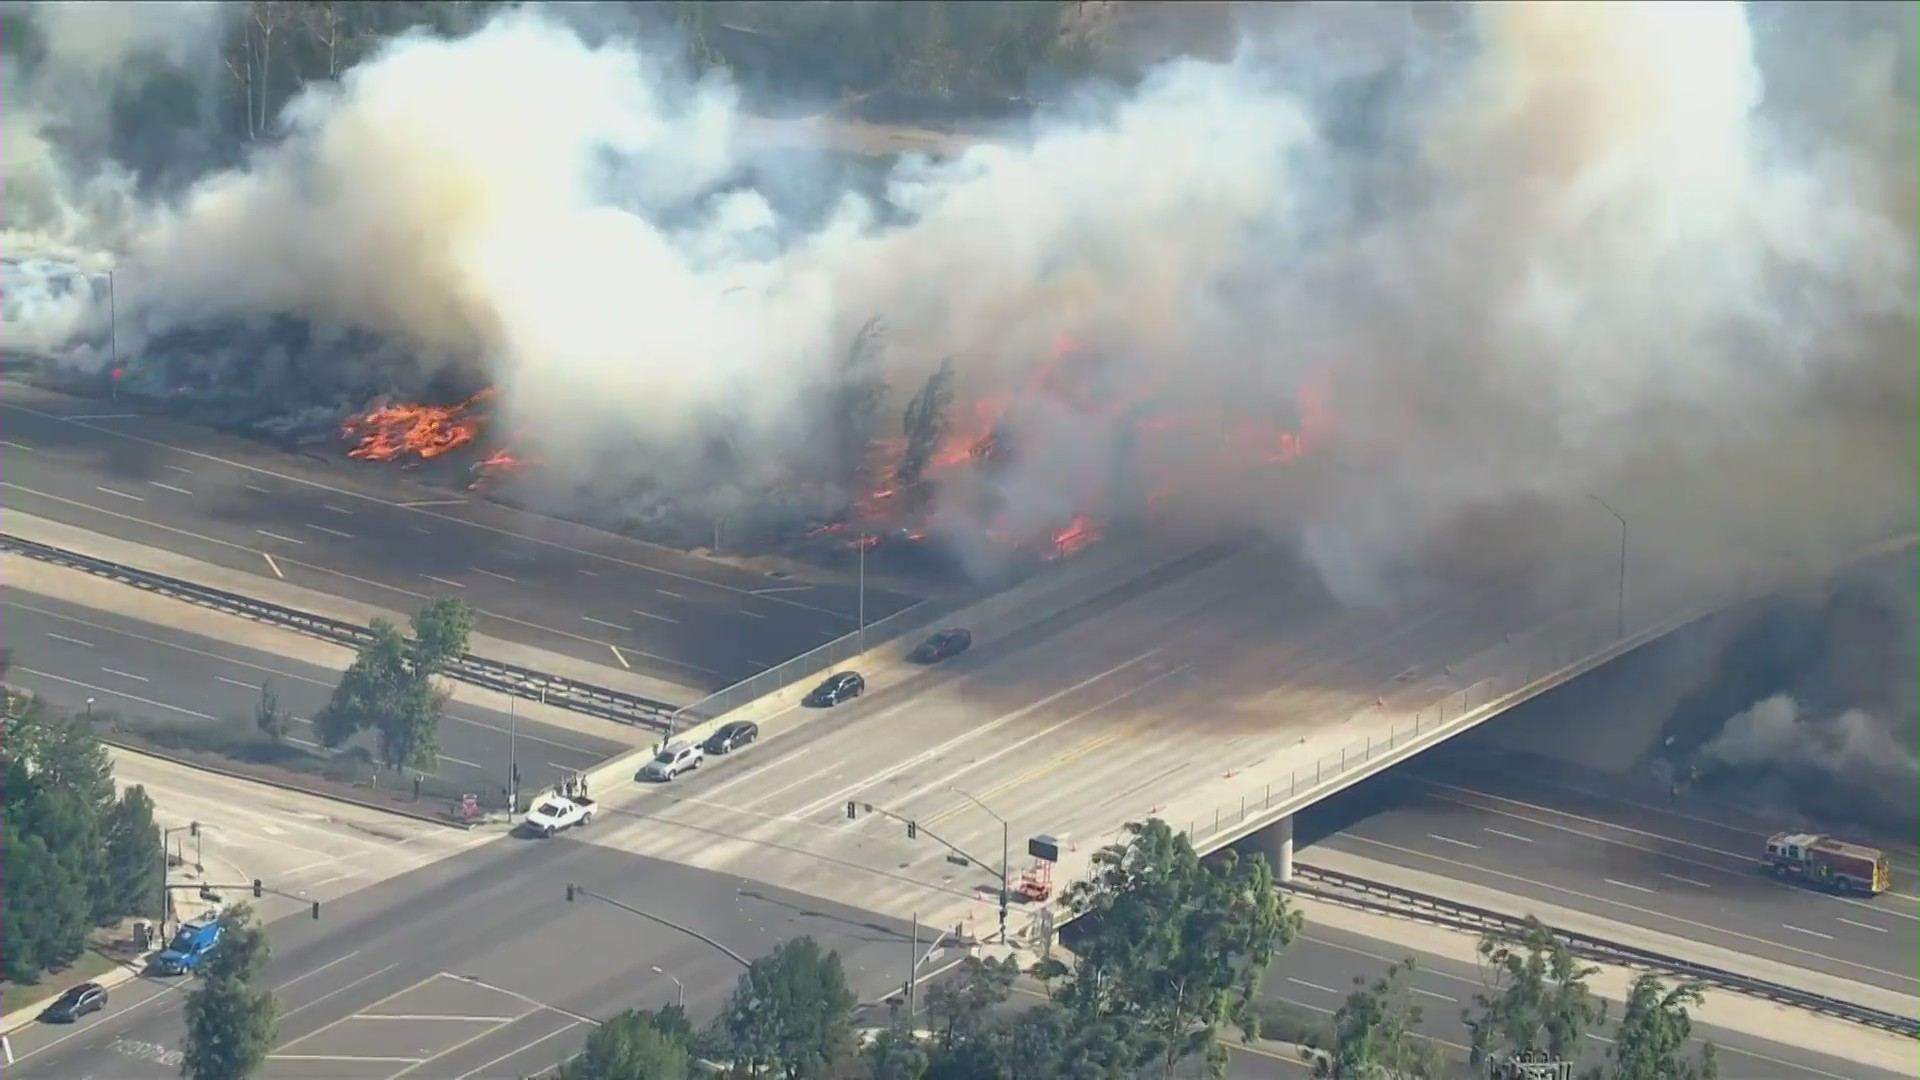 Flames rage near the Irvine Boulevard overpass above the 133 in Irvine as the Silverado Fire burns on Oct. 26, 2020. (KTLA)